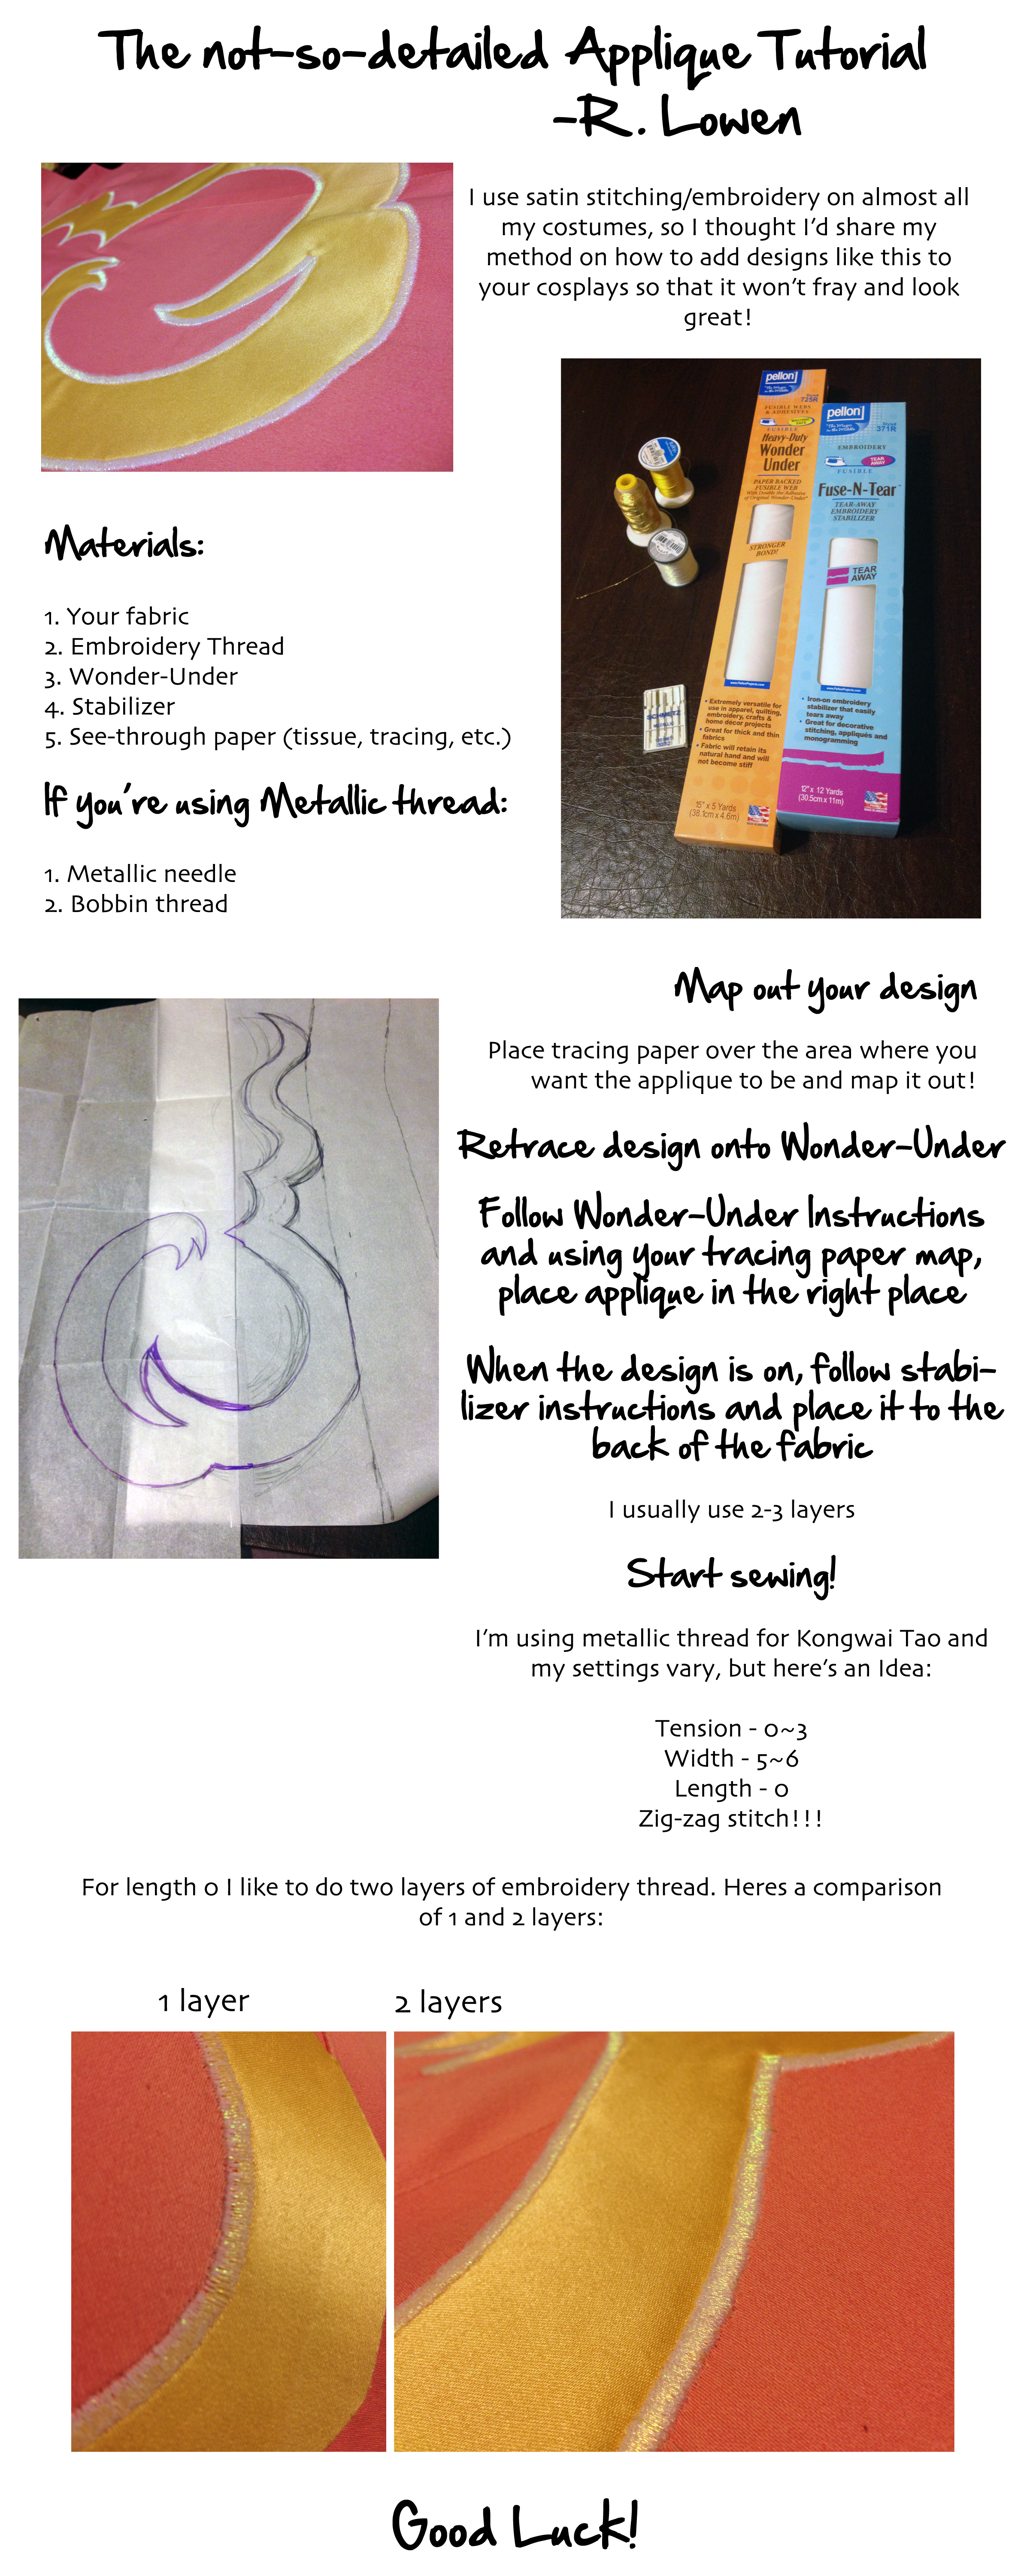 The Quick and not-so-detailed Applique Tutorial